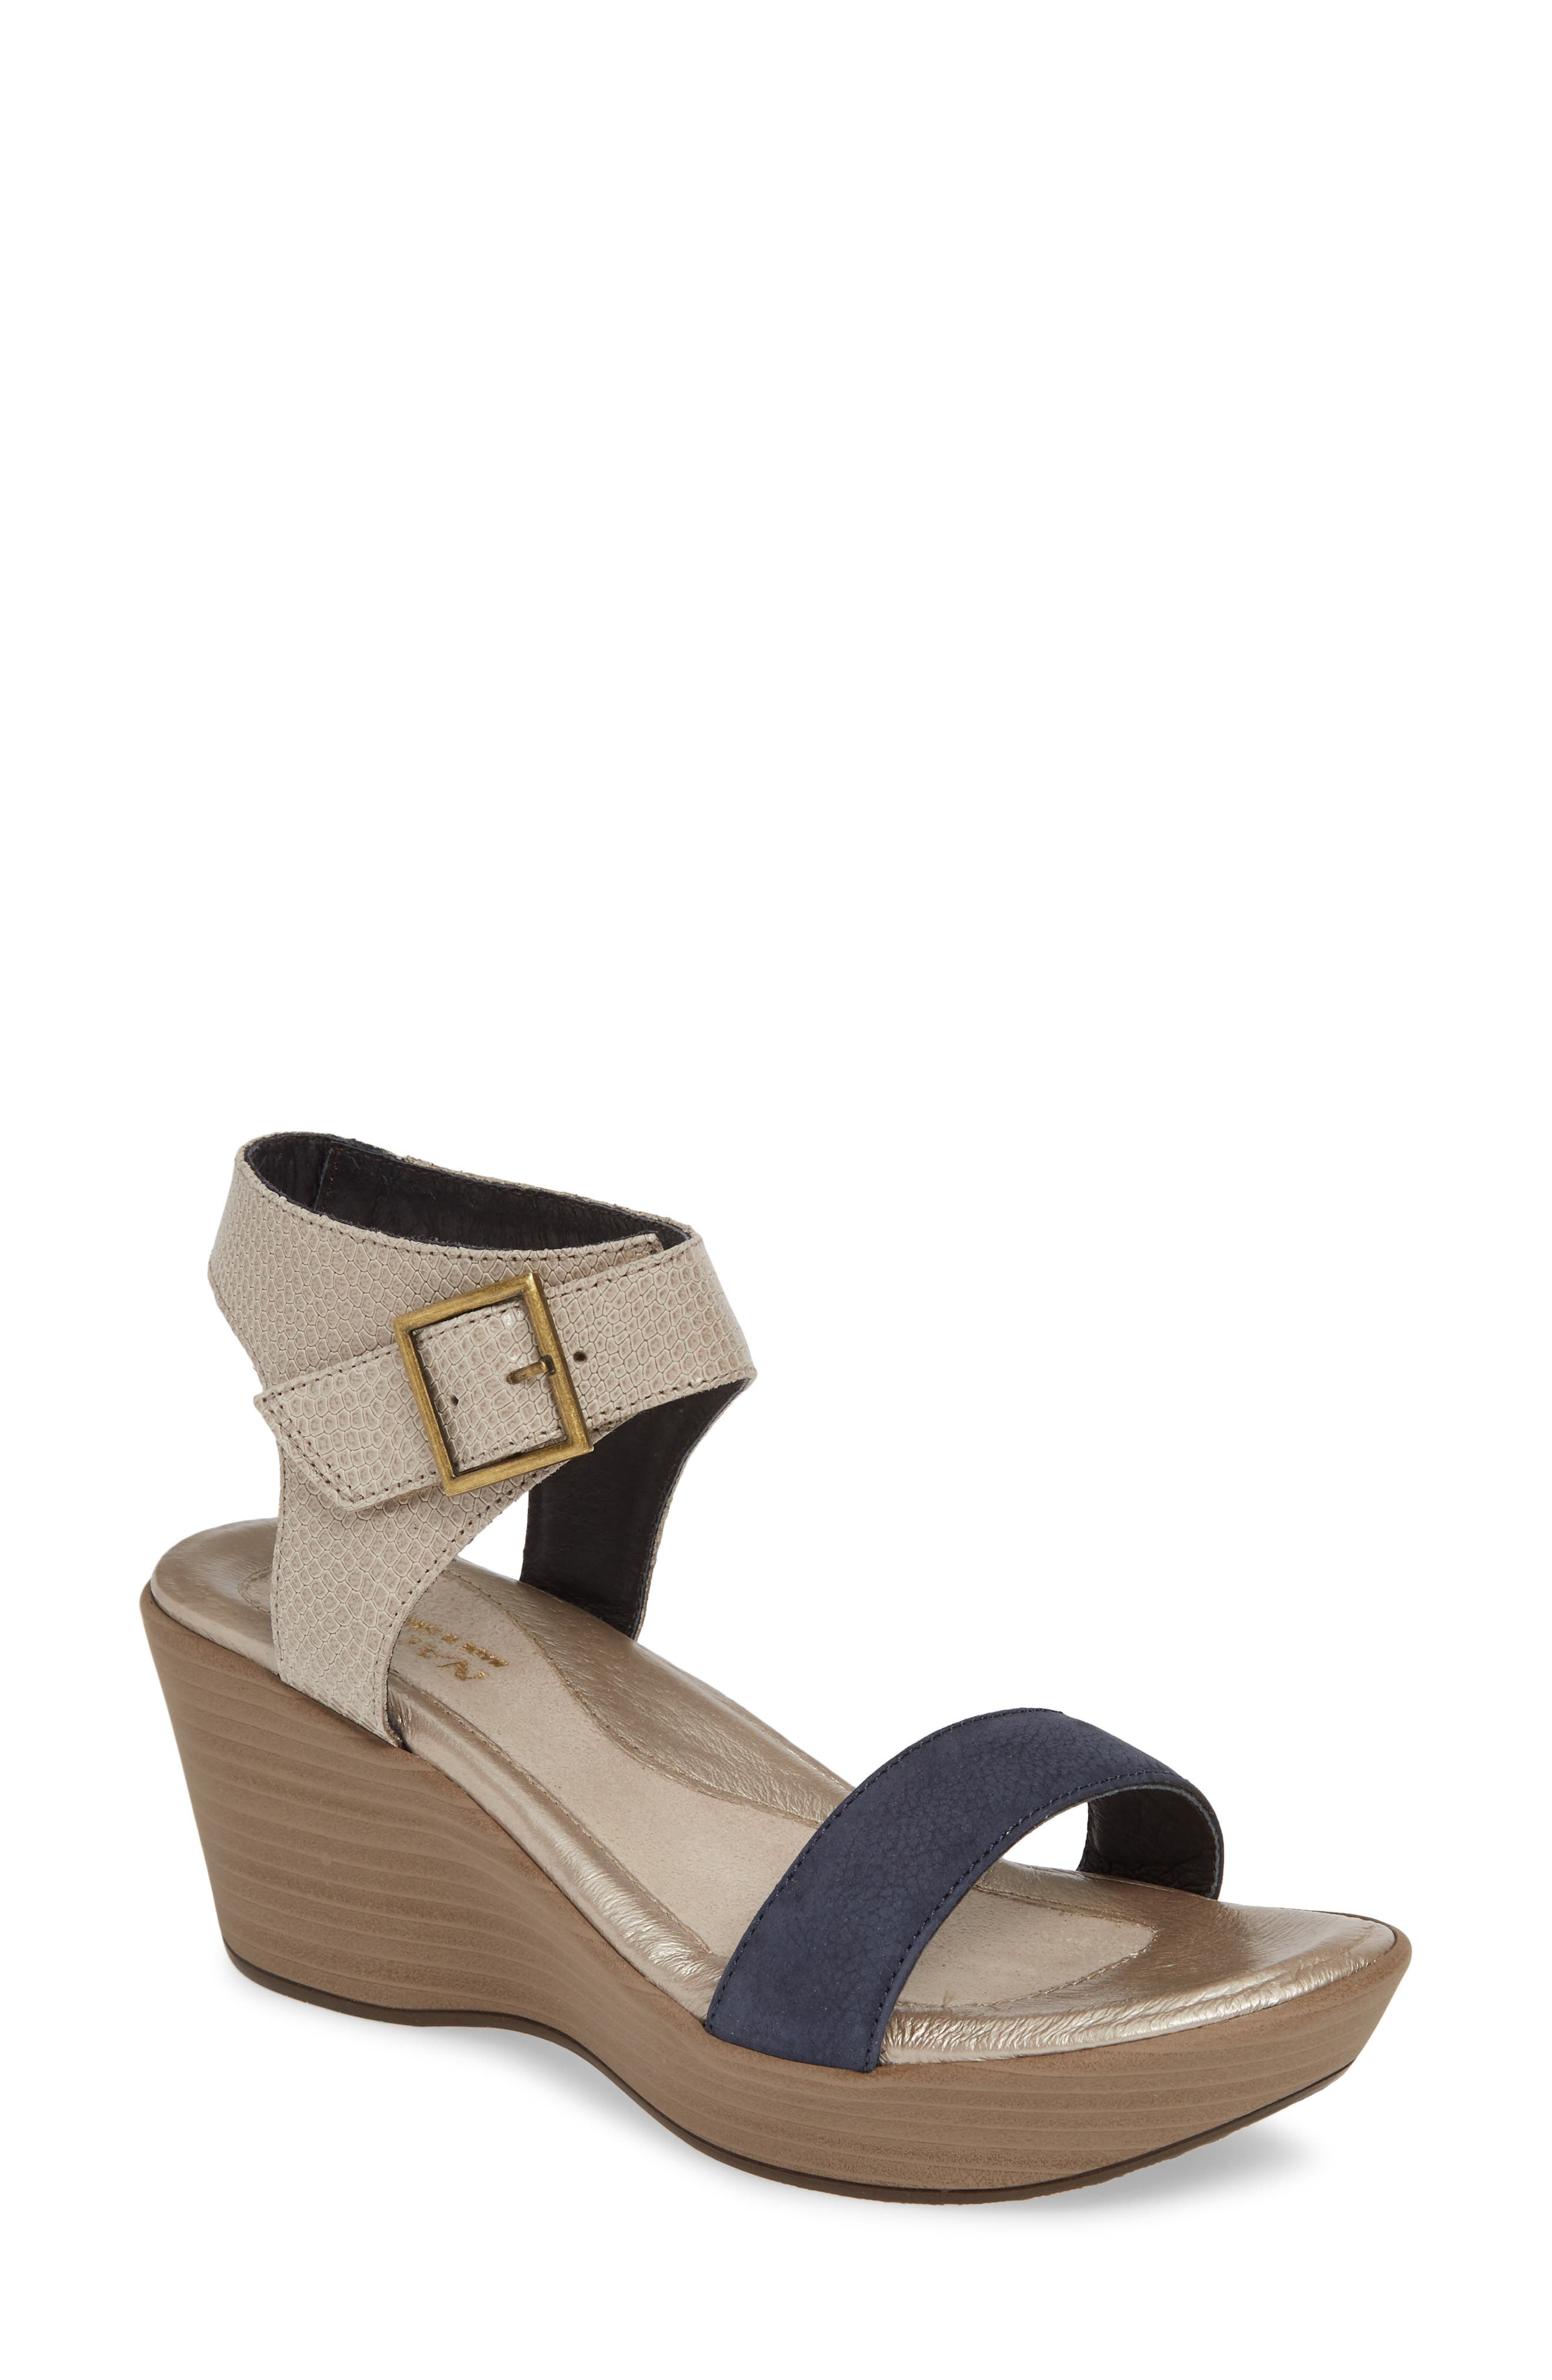 NAOT, Caprice Wedge Sandal, Main thumbnail 1, color, BEIGE LIZARD/ NAVY VELVET